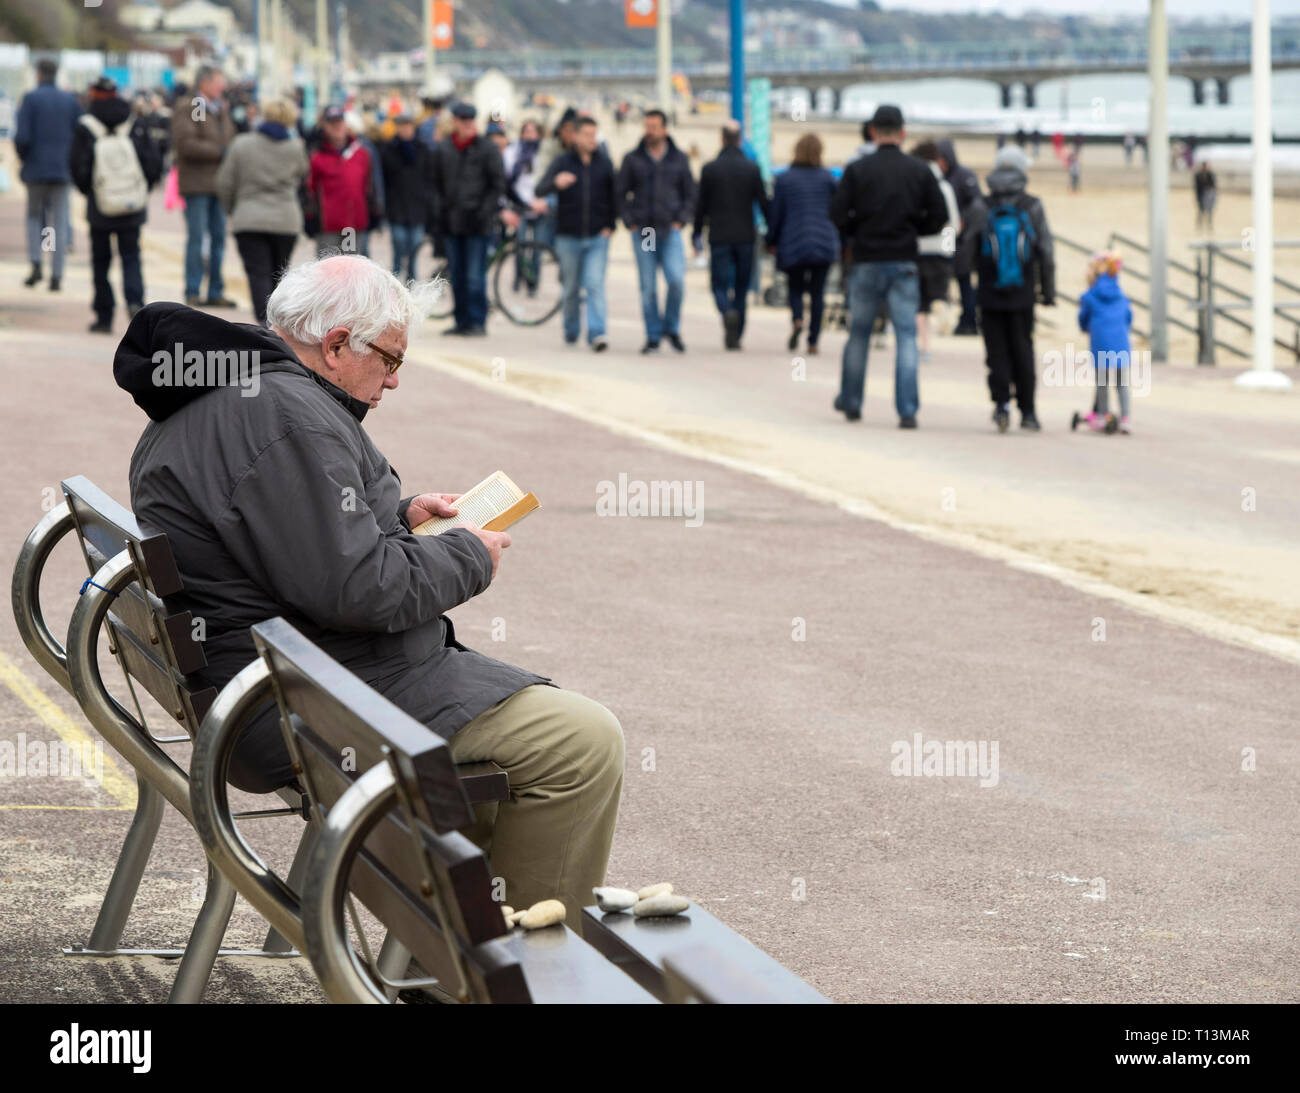 White-haired man sitting on a bench on the promenade at Bournemouth reading a book with people walking nearby. - Stock Image